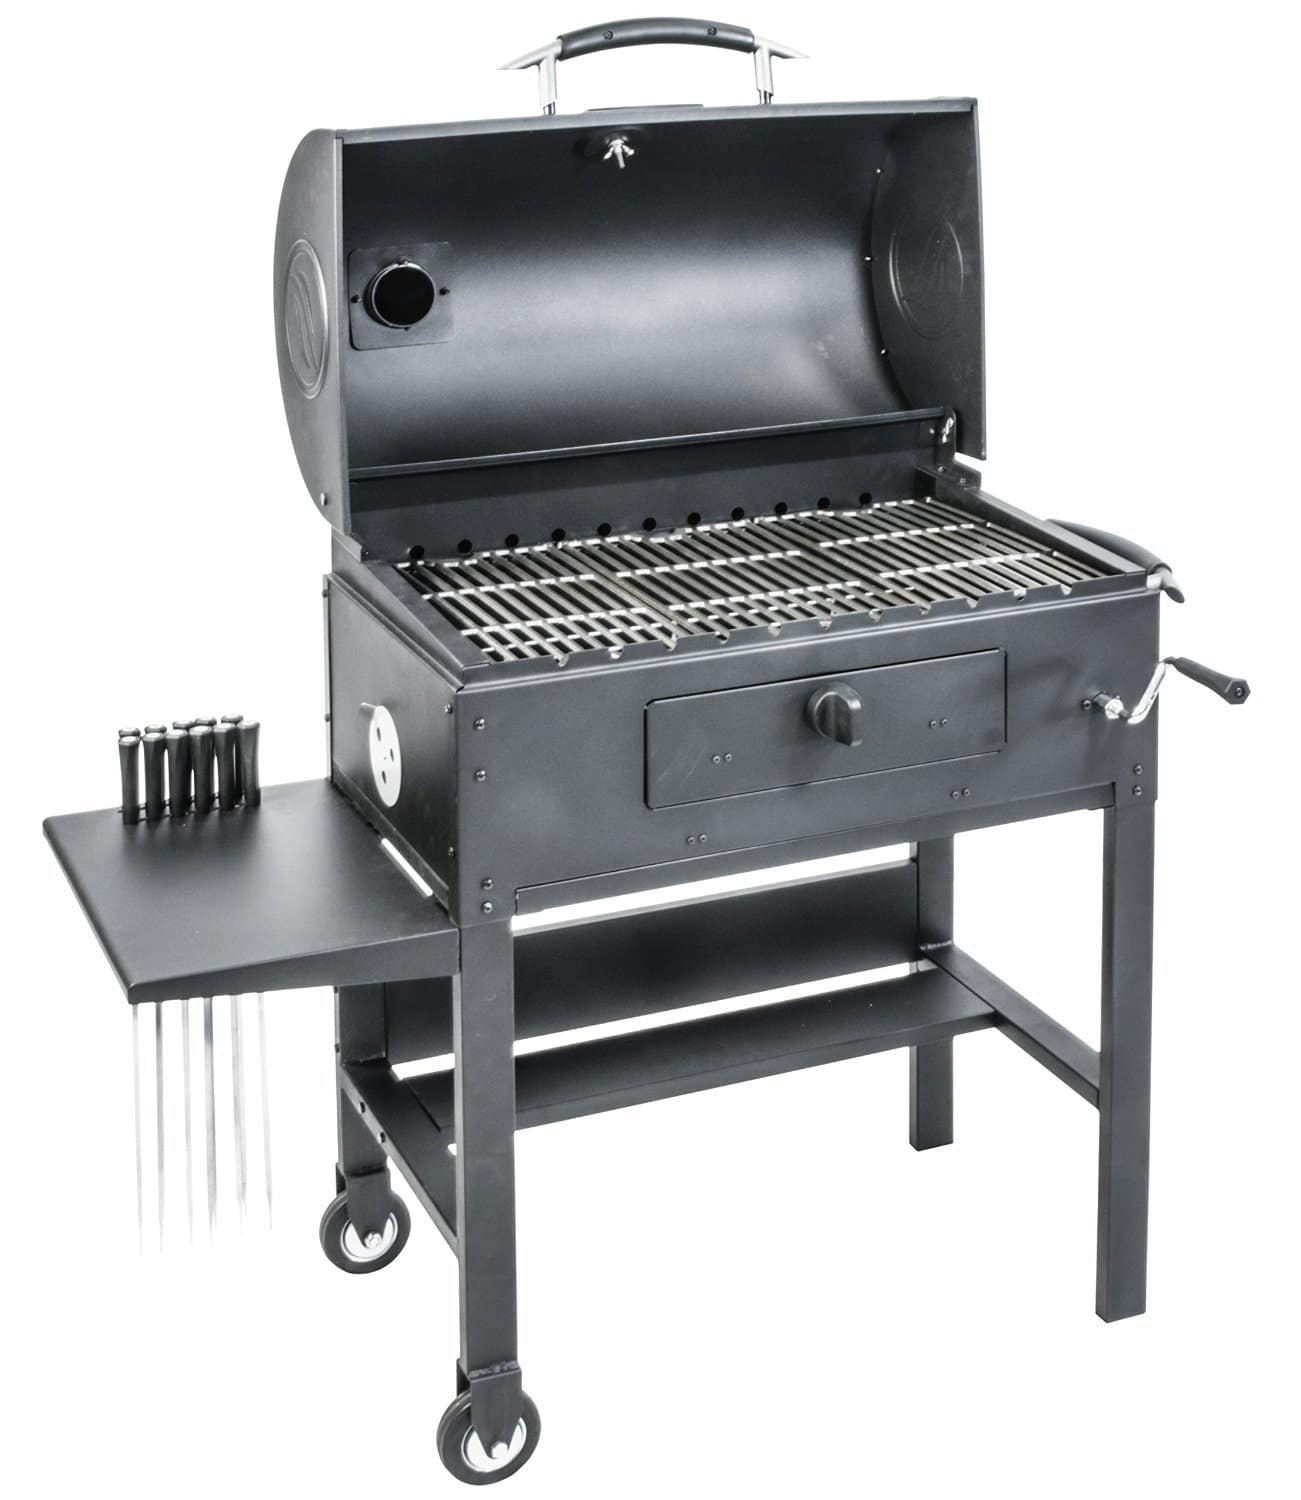 catering amp banquets information charcoal grill amp rotisserie - HD1301×1500